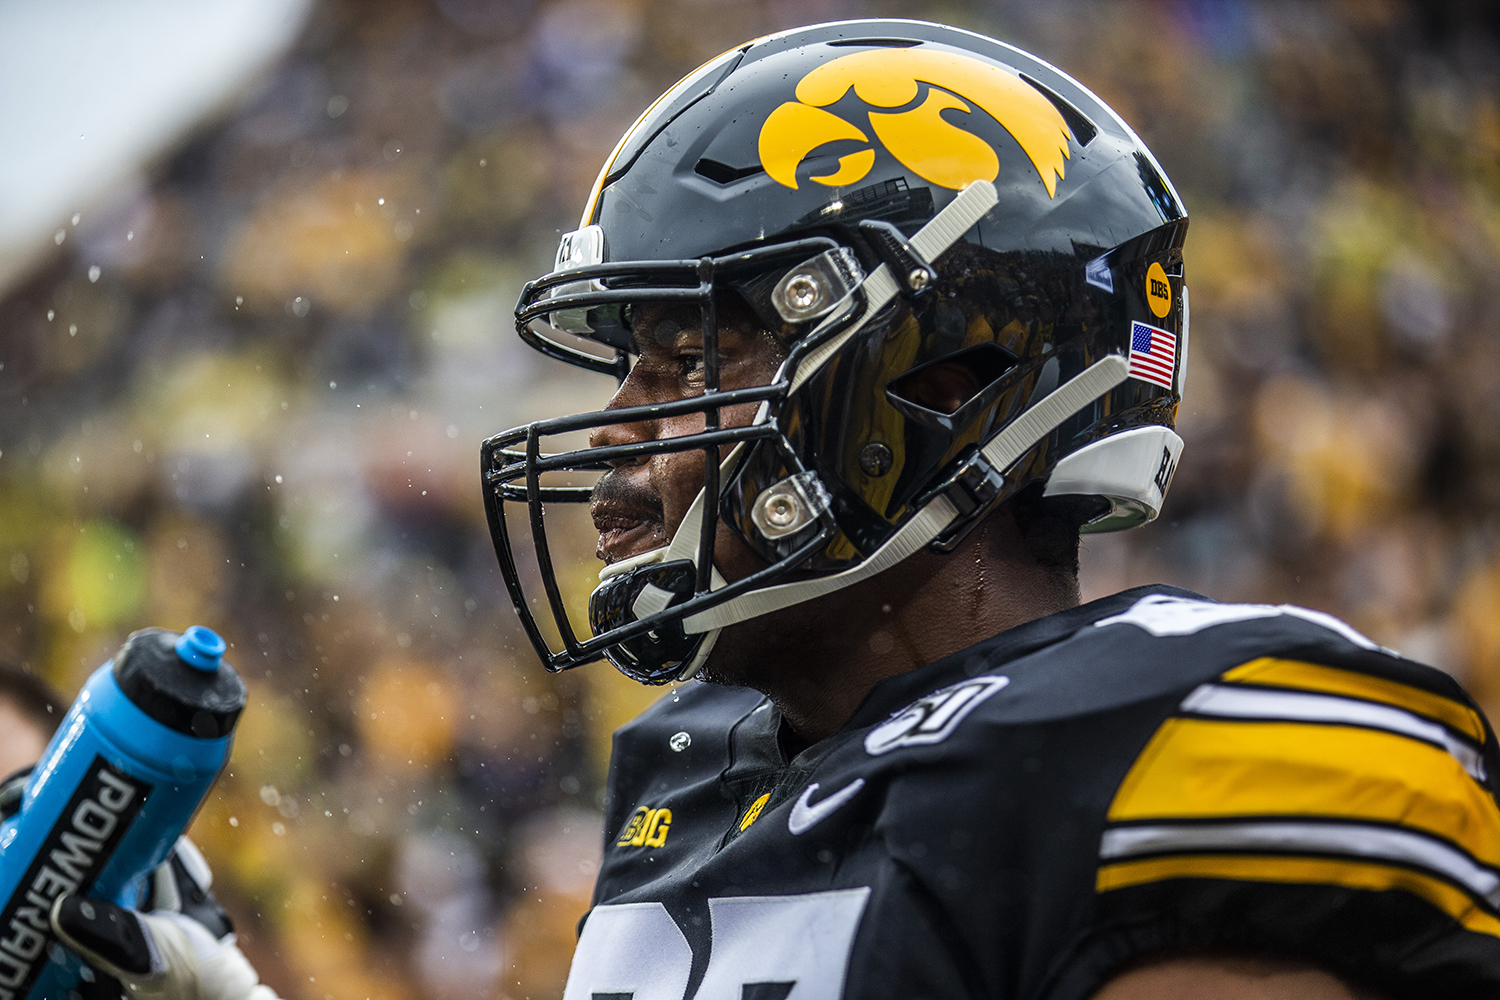 An+Iowa+player+takes+a+drink+of+water+during+the+football+game+against+Miami+%28Ohio%29+at+Kinnick+Stadium+on+Saturday%2C+August+31%2C+2019.